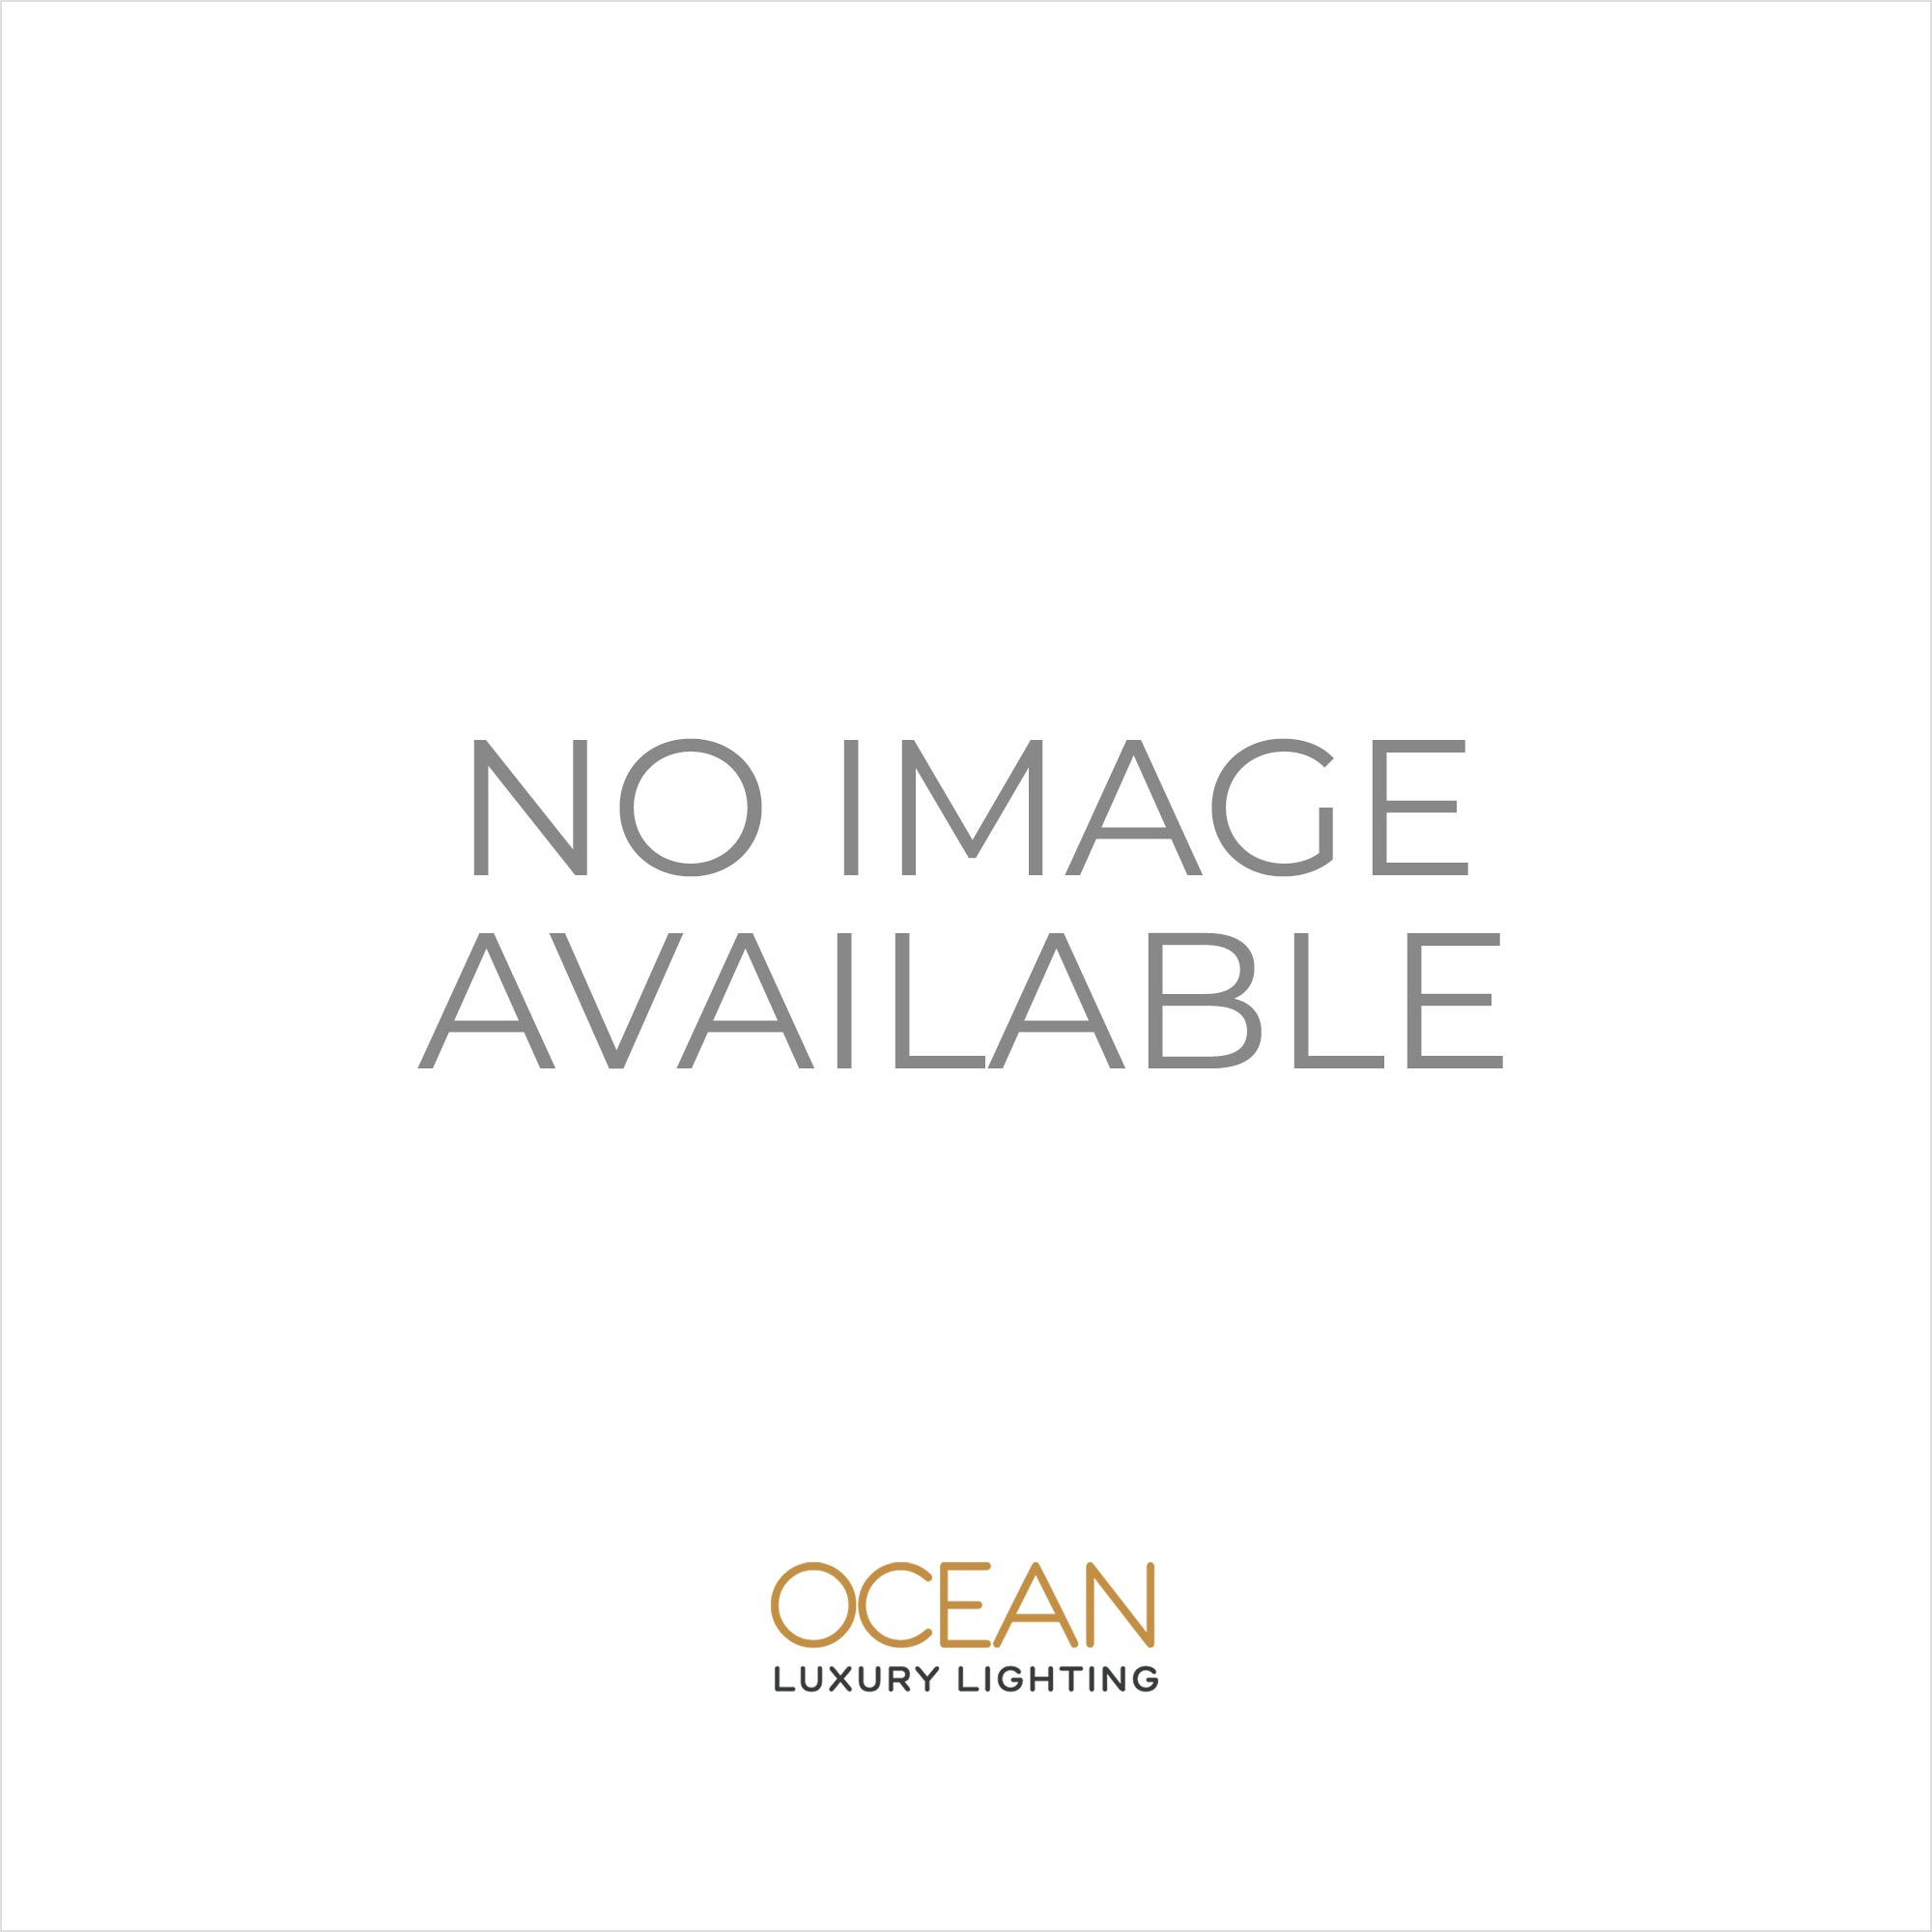 Eglo 82844 Up2 2 light traditional floor lamp adjustable lamp white frosted glass and plastic shade antique brass finish with switch